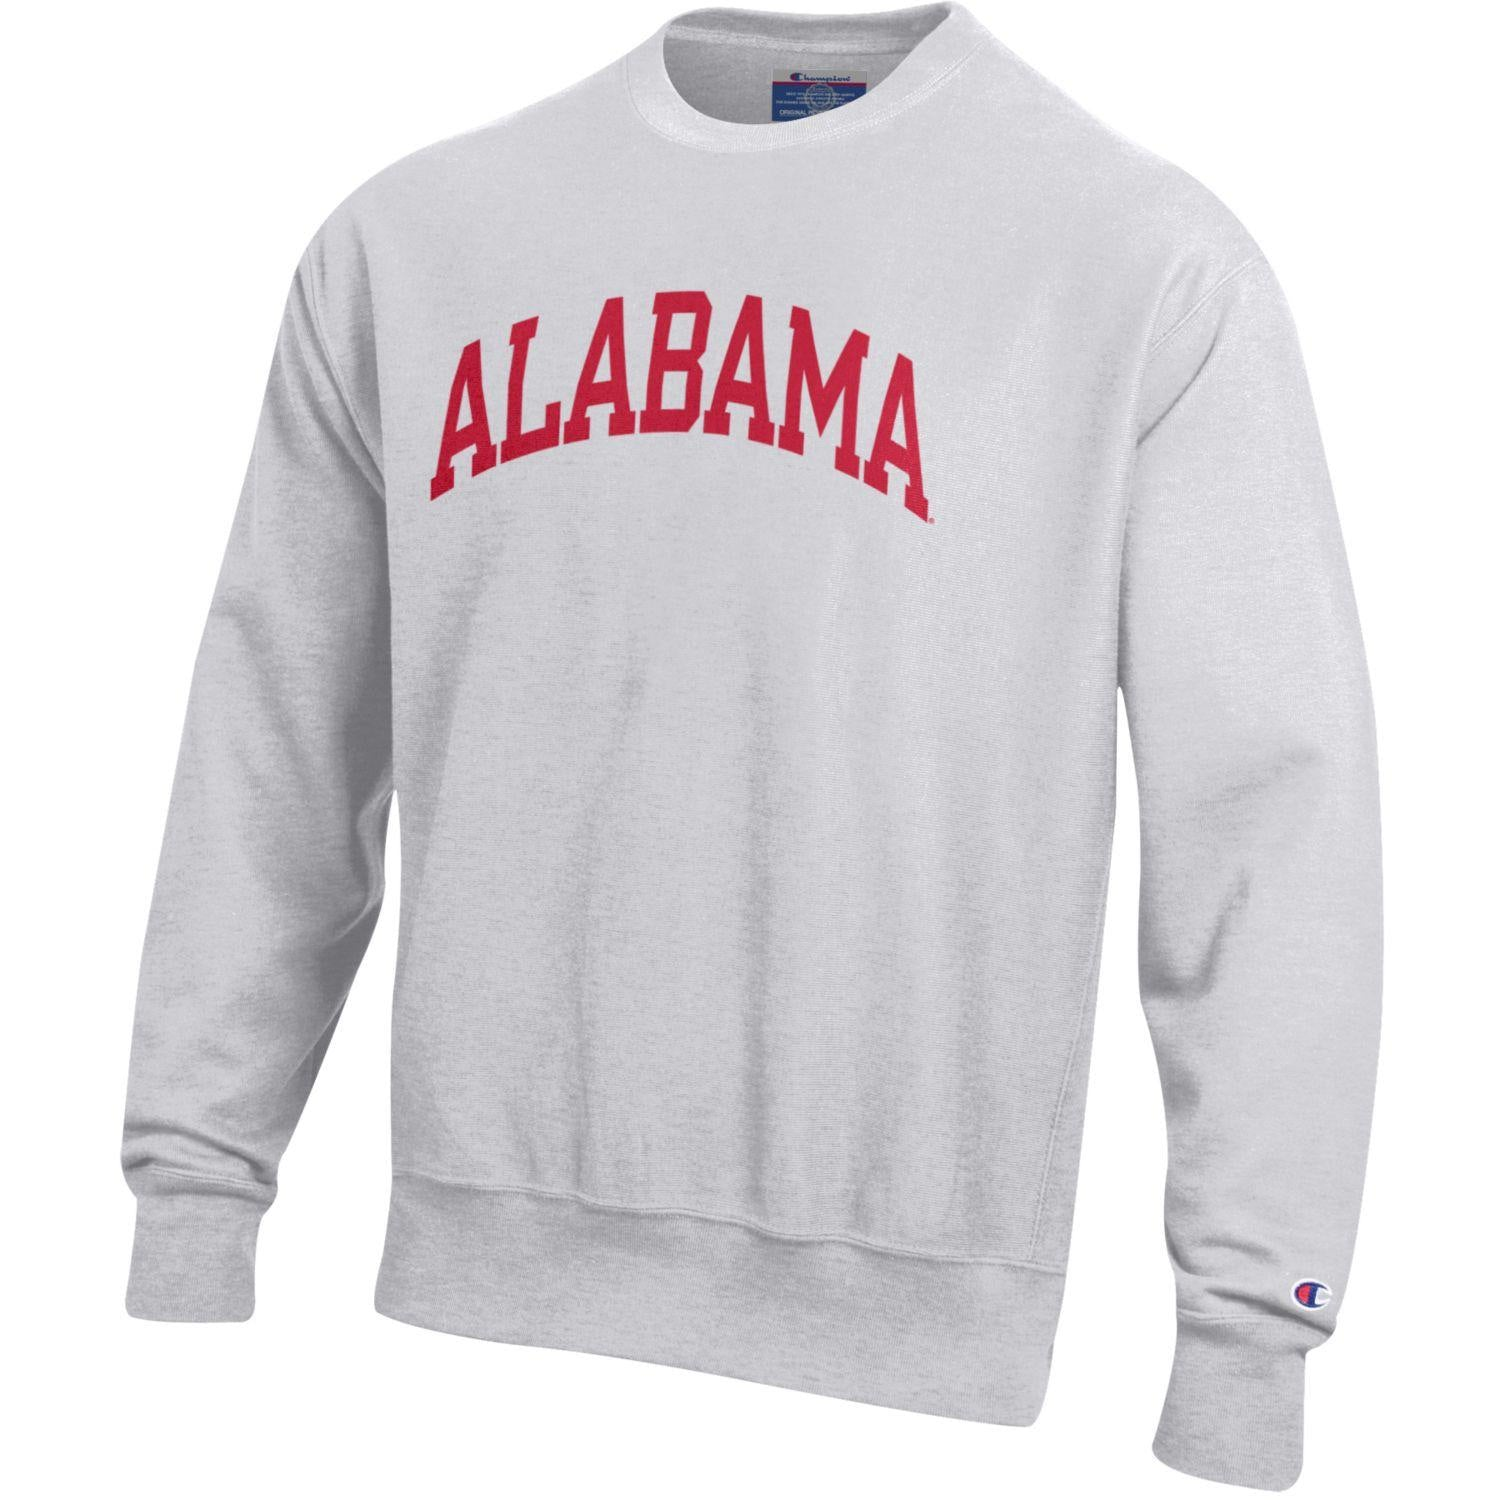 Alabama Crimson Tide Champion Reverse Weave Sweater